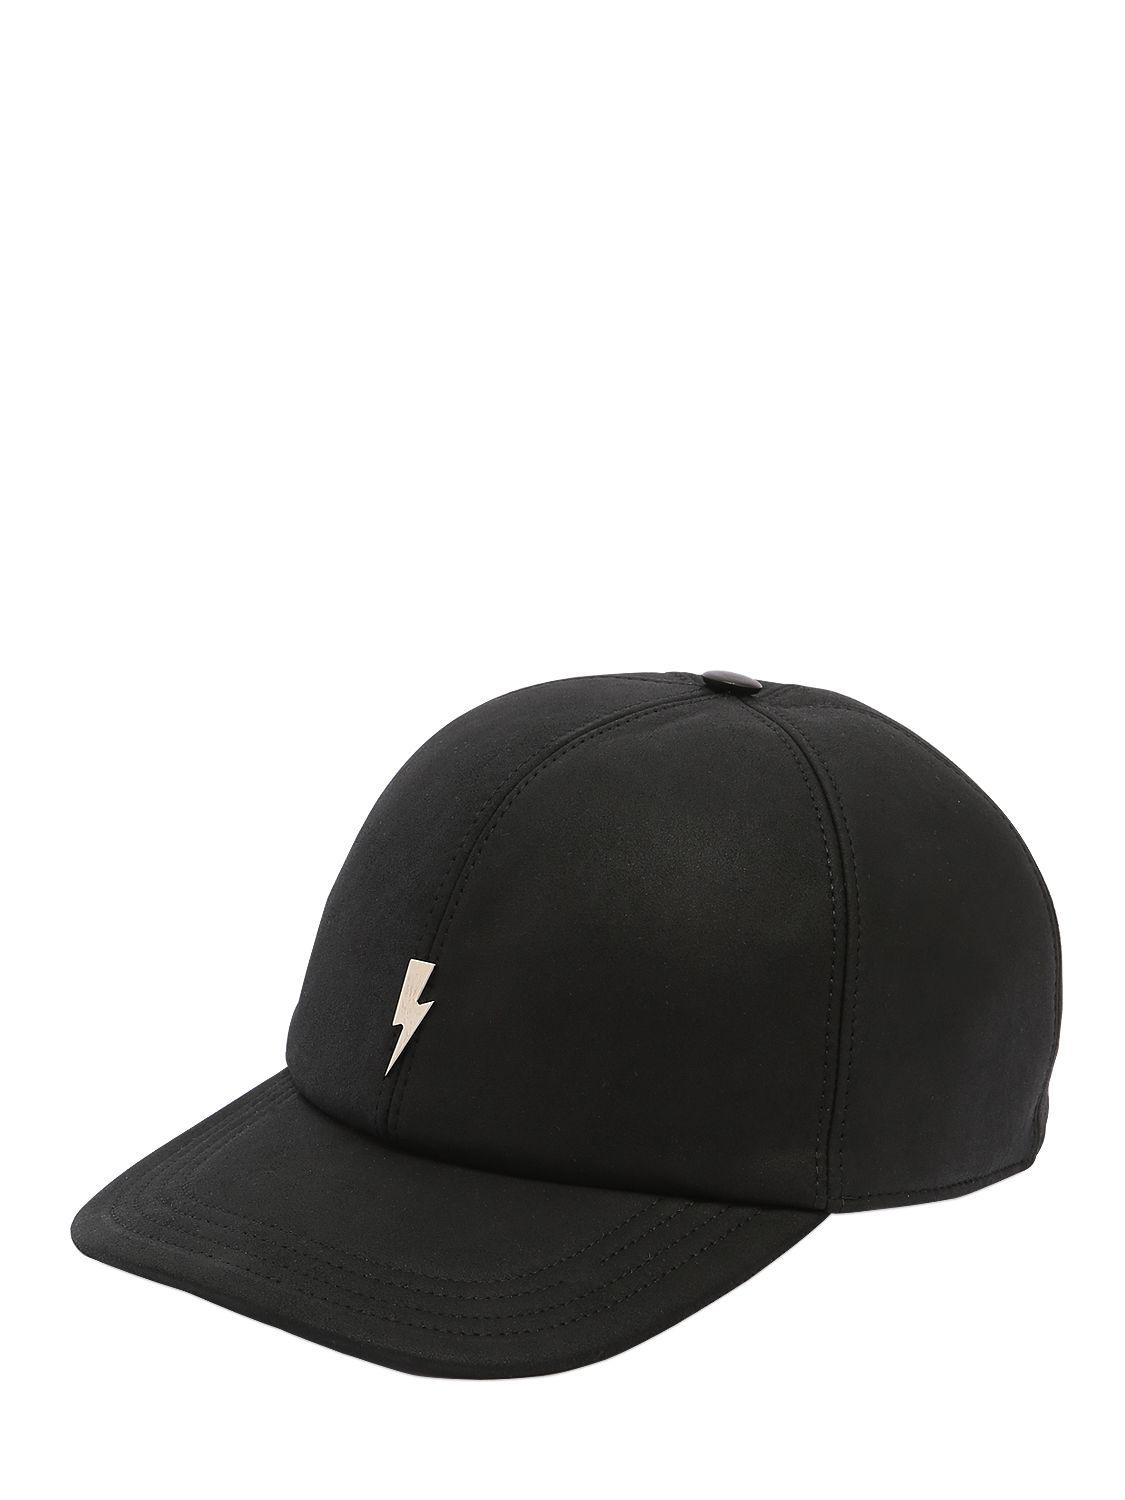 d0f6e3b2d29 Neil Barrett - Black Bolt Leather Baseball Hat W  Embroidery for Men -  Lyst. View fullscreen